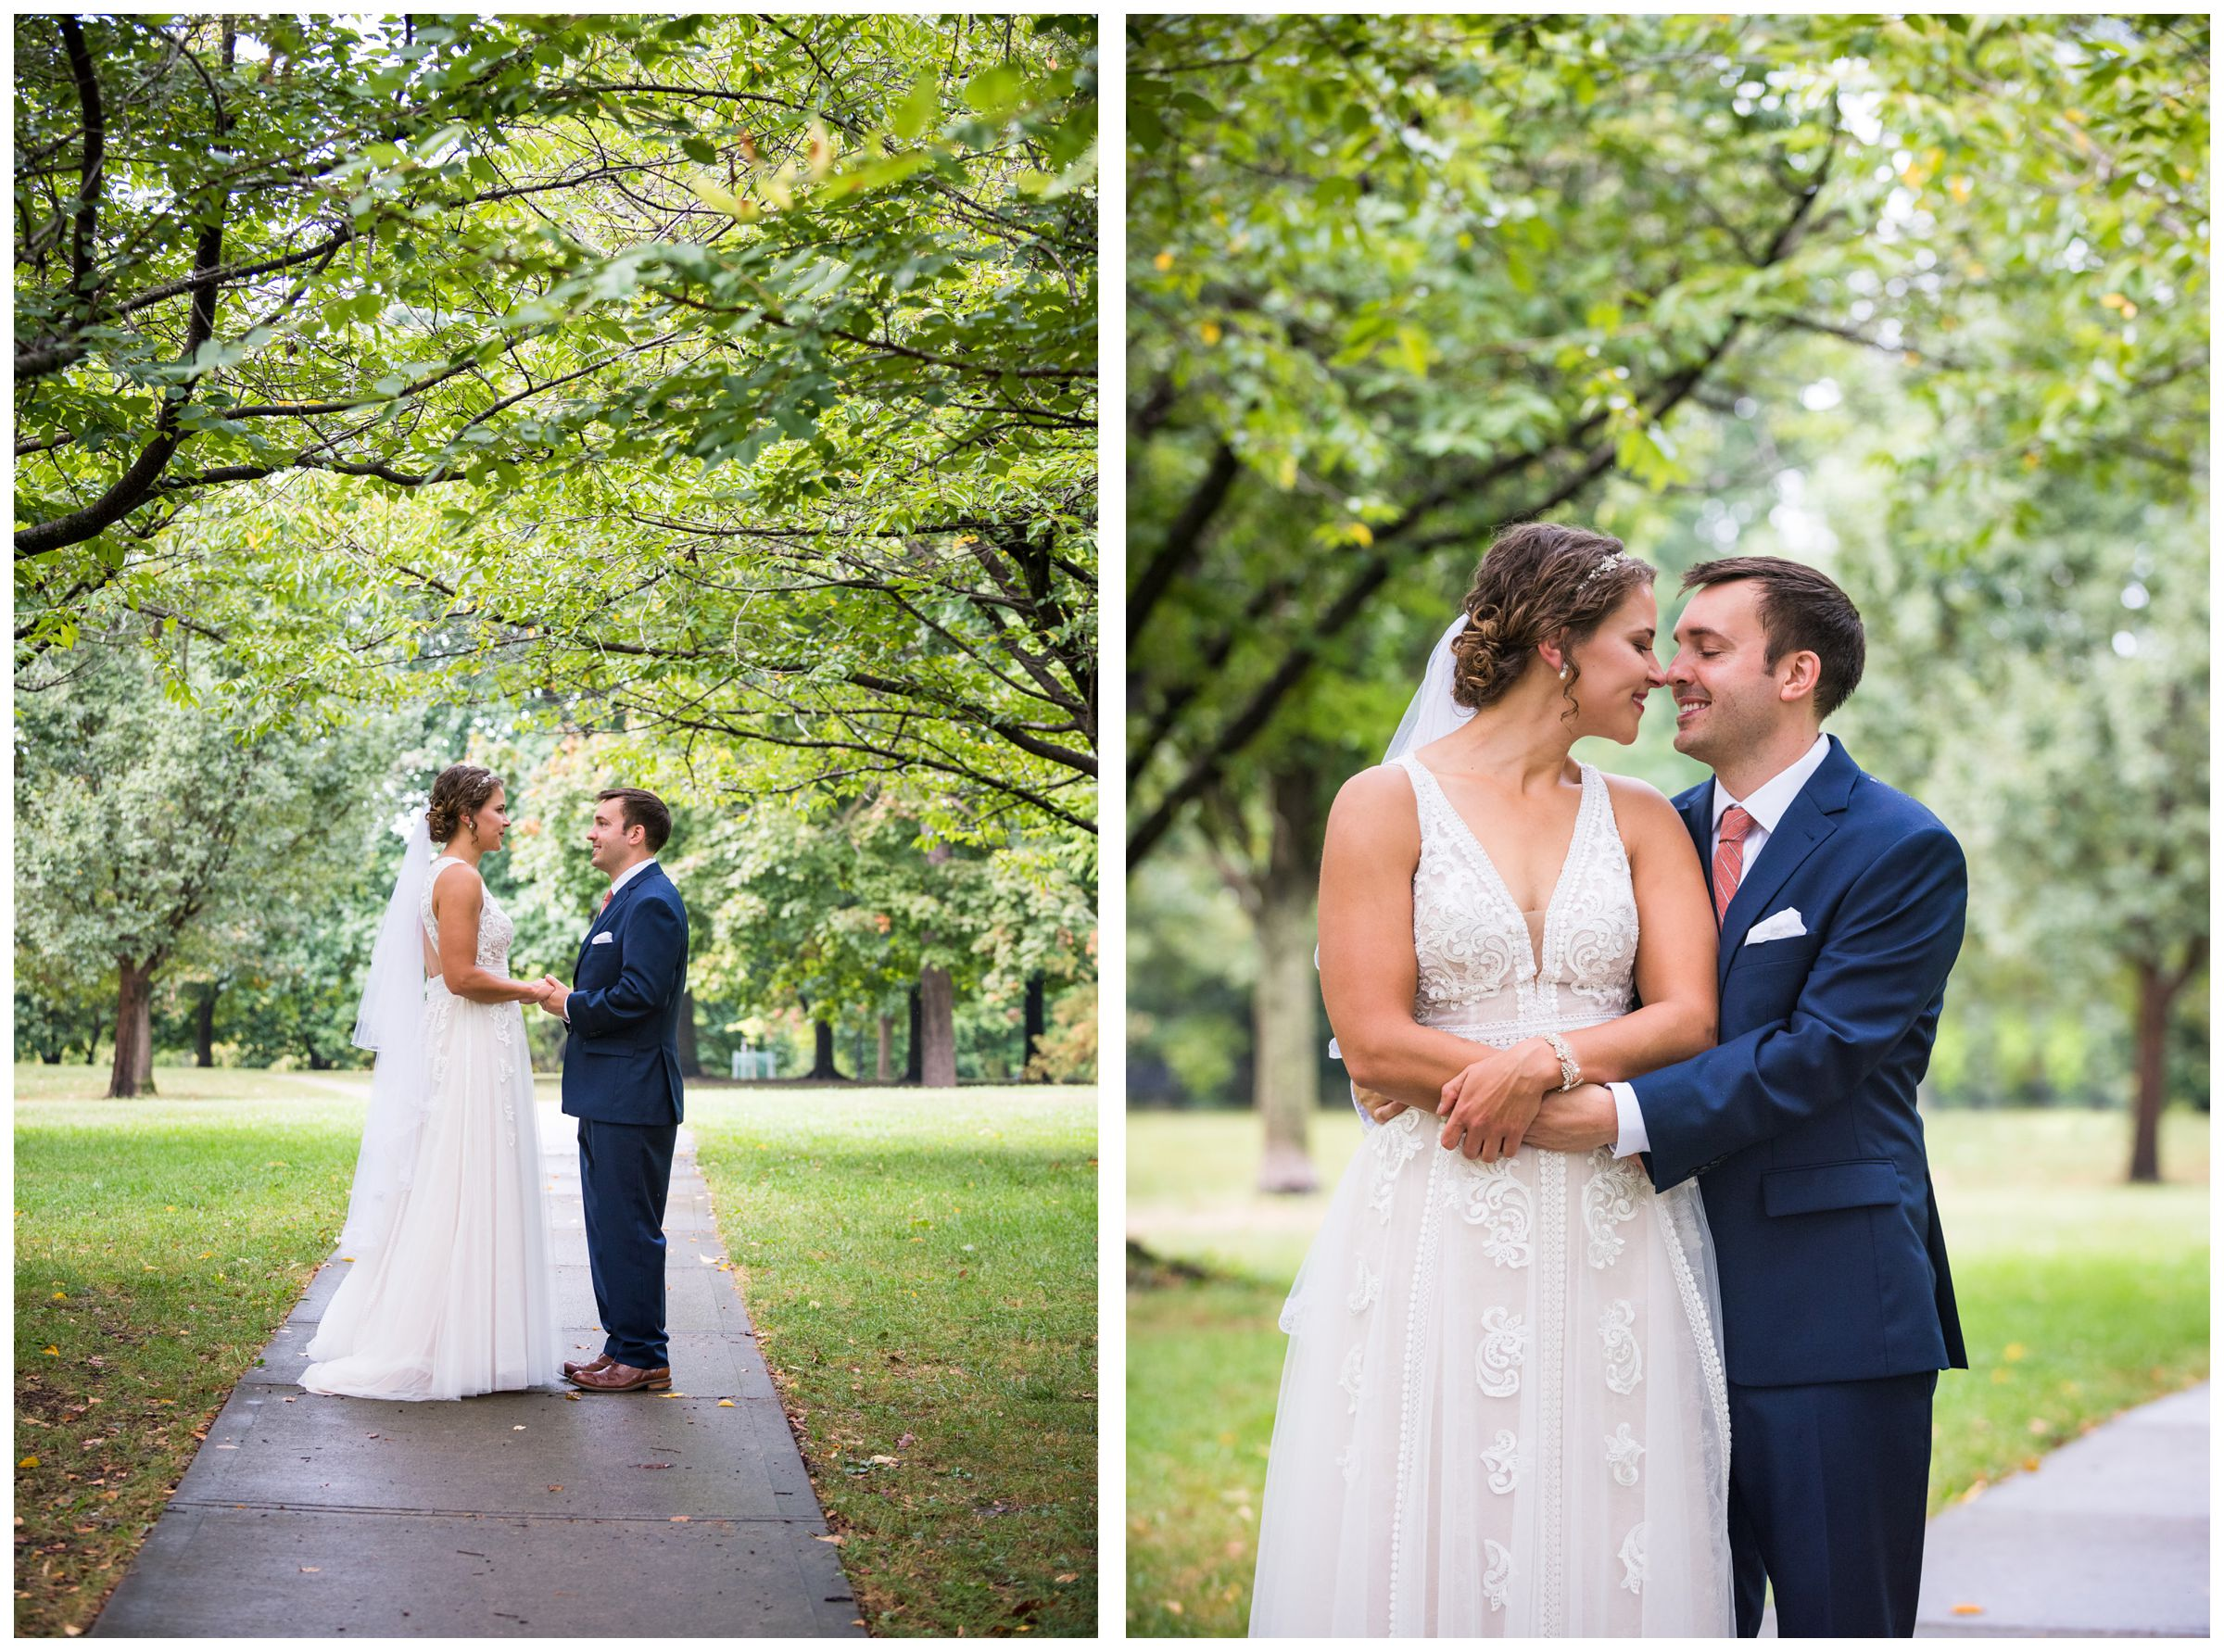 bride and groom wedding photography at Goodale Park in the Short North in Columbus Ohio